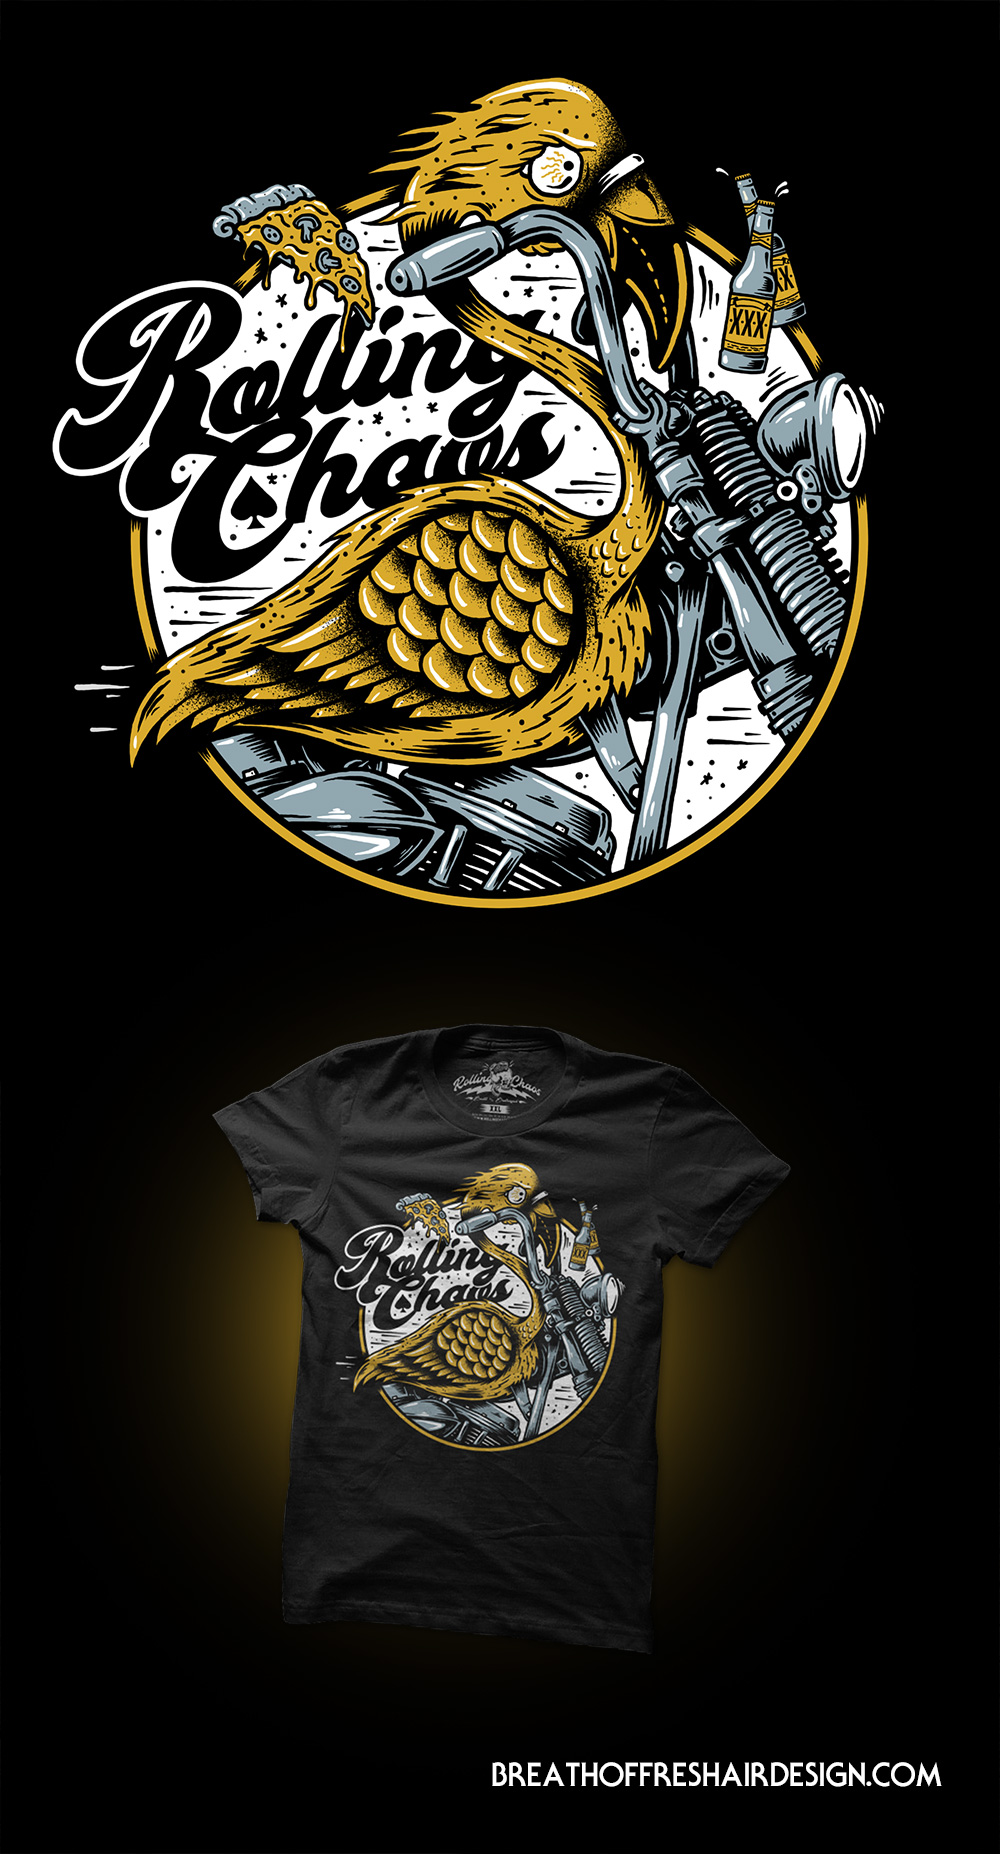 Summer Livin, Rolling Chaos, Flamingo, Pizza, Beer, Chopper, Motorcycle, Summer, Two Wheels, Bike, Clothing, Brand, Toronto, Ontario, Canada, Breath Of Fresh Air Design, Illustration, Design, Art, Kustom Art, Cusstom, Booze, Drawing, Graphic Design, Illustrator, Graphic Designer